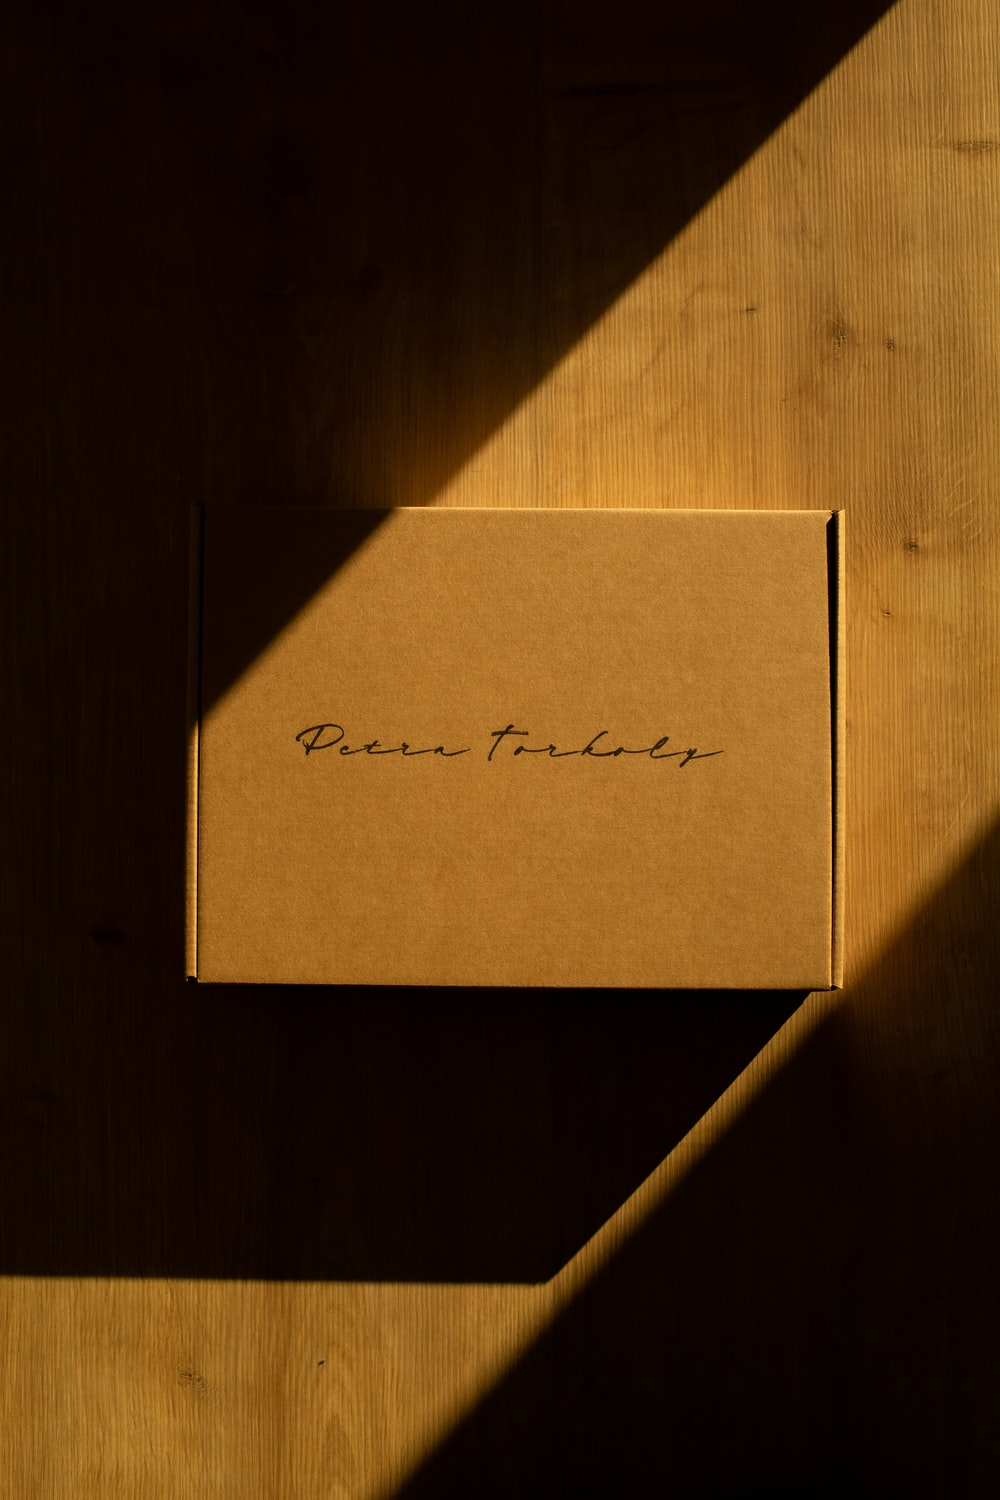 brown cardboard box on brown wooden table